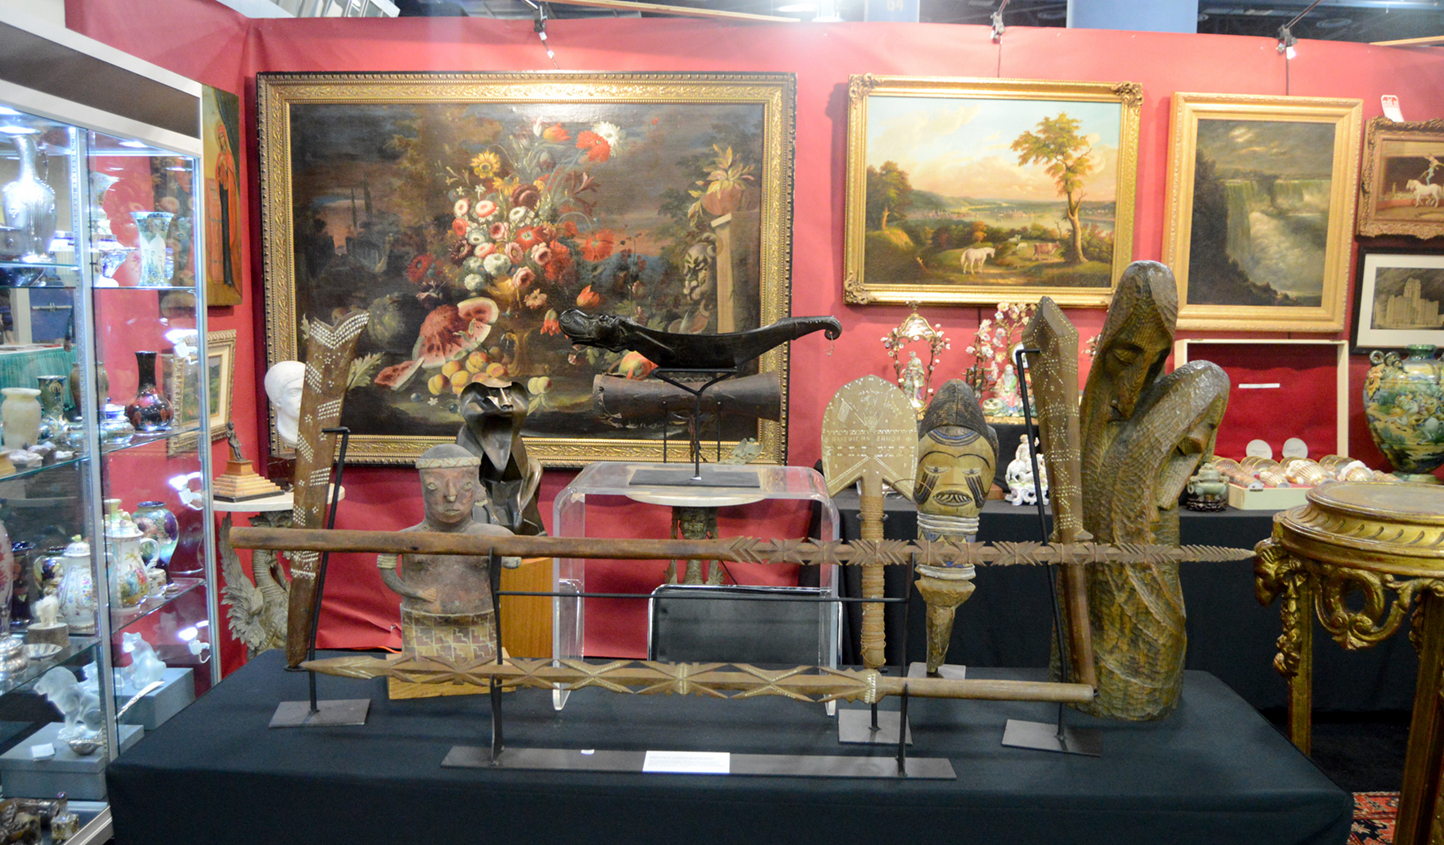 A rare late Nineteenth Century collection of carved Samoan weapons,<br>some retaining their original lime inlays, were on offer at Coliseum Antiques,<br>Los Alamitos, Calif.